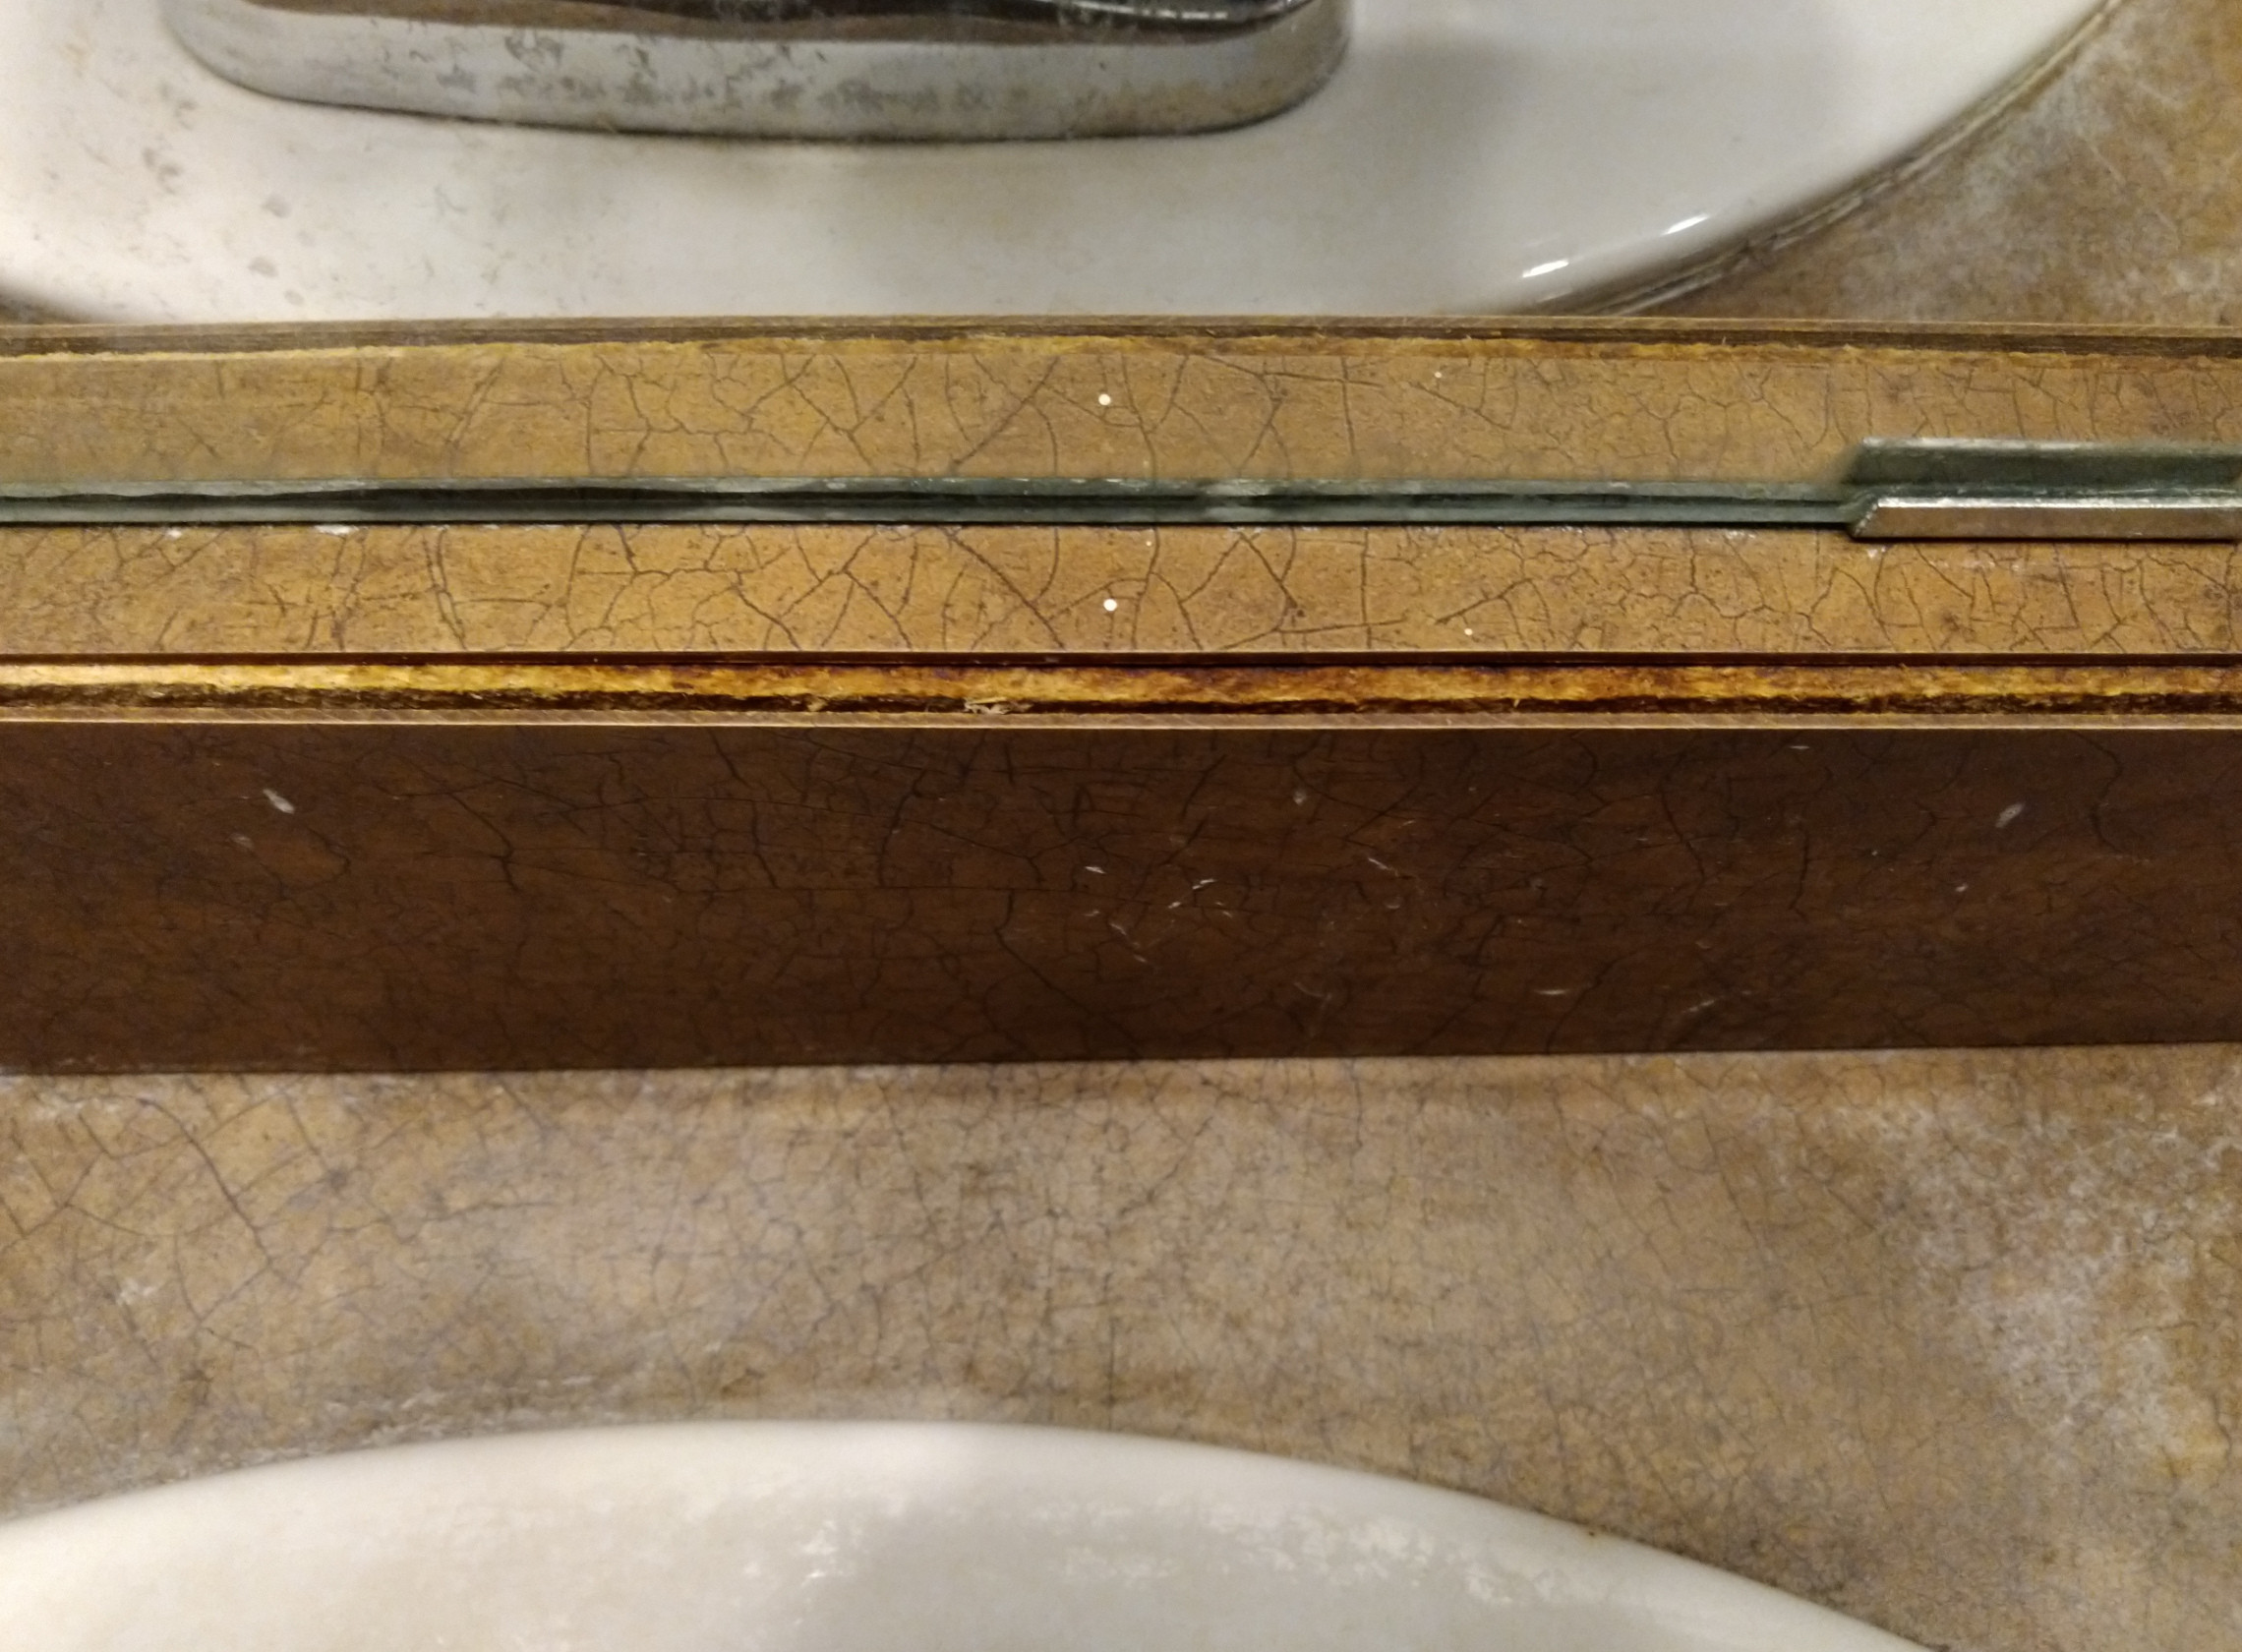 How Can I Repair Replace This Swollen Section Of Countertop Home Improvement Stack Exchange